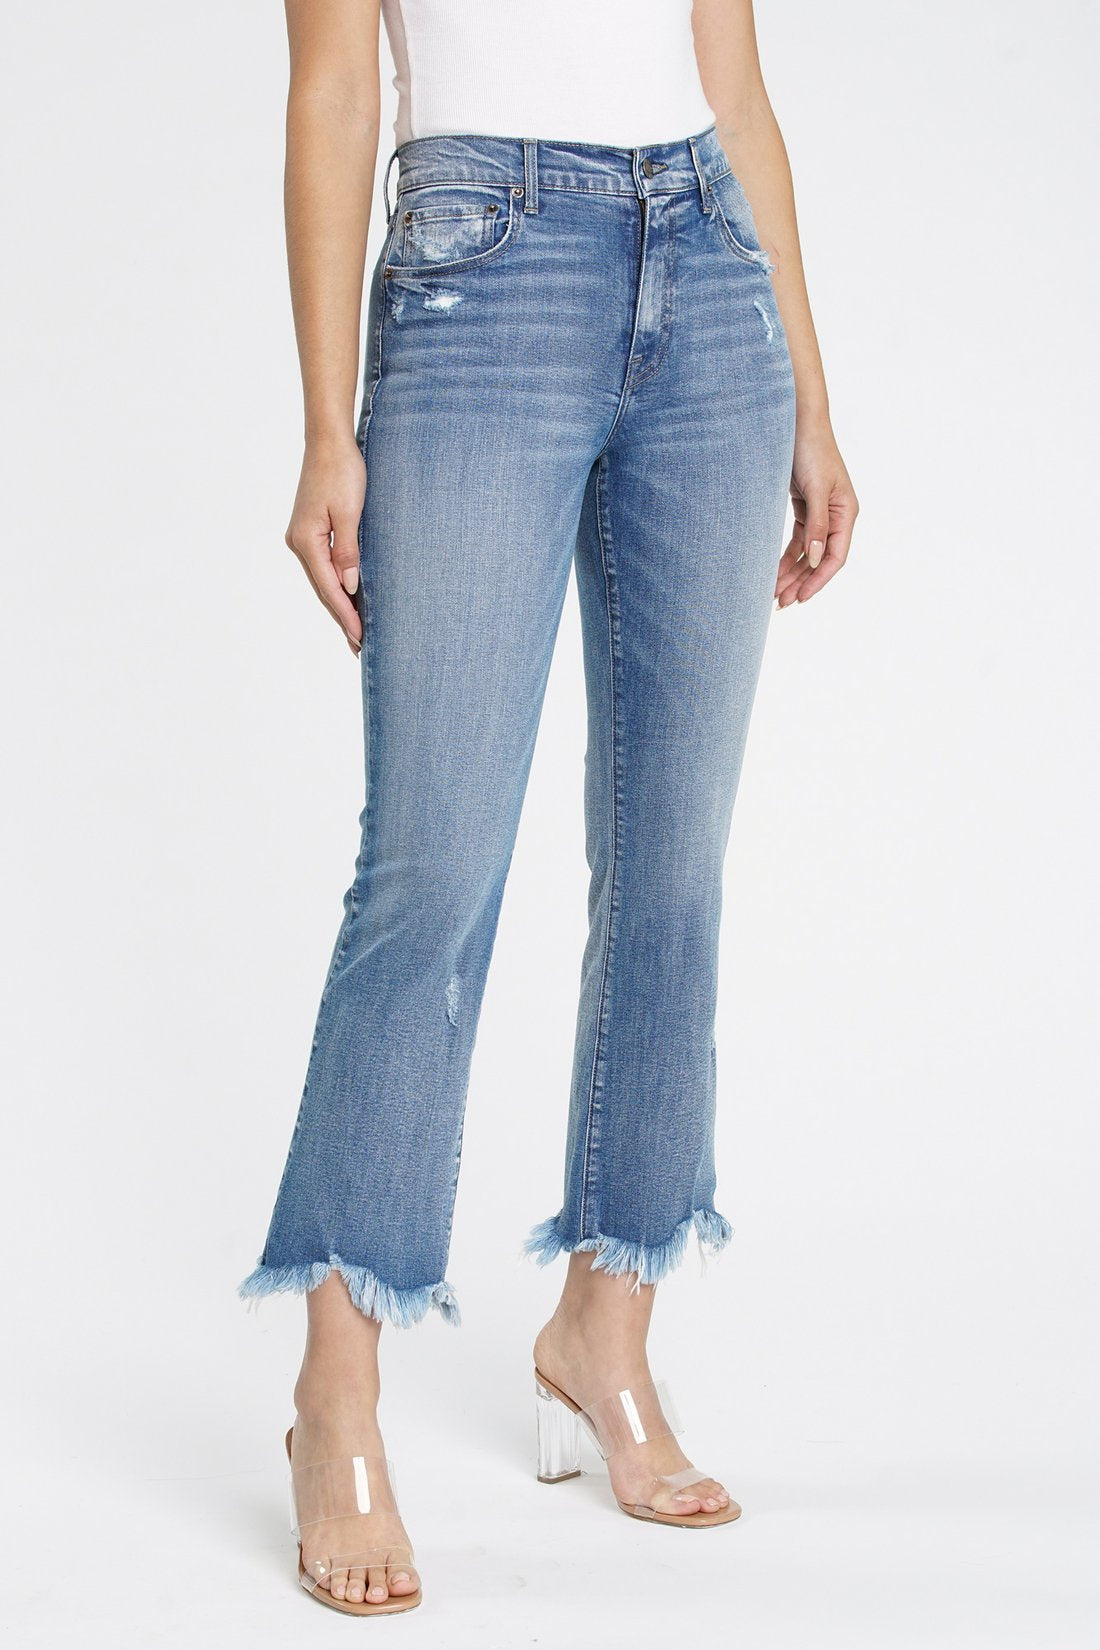 LENNON HIGH RISE CROP BOOT CUT | SHOCKWAVE